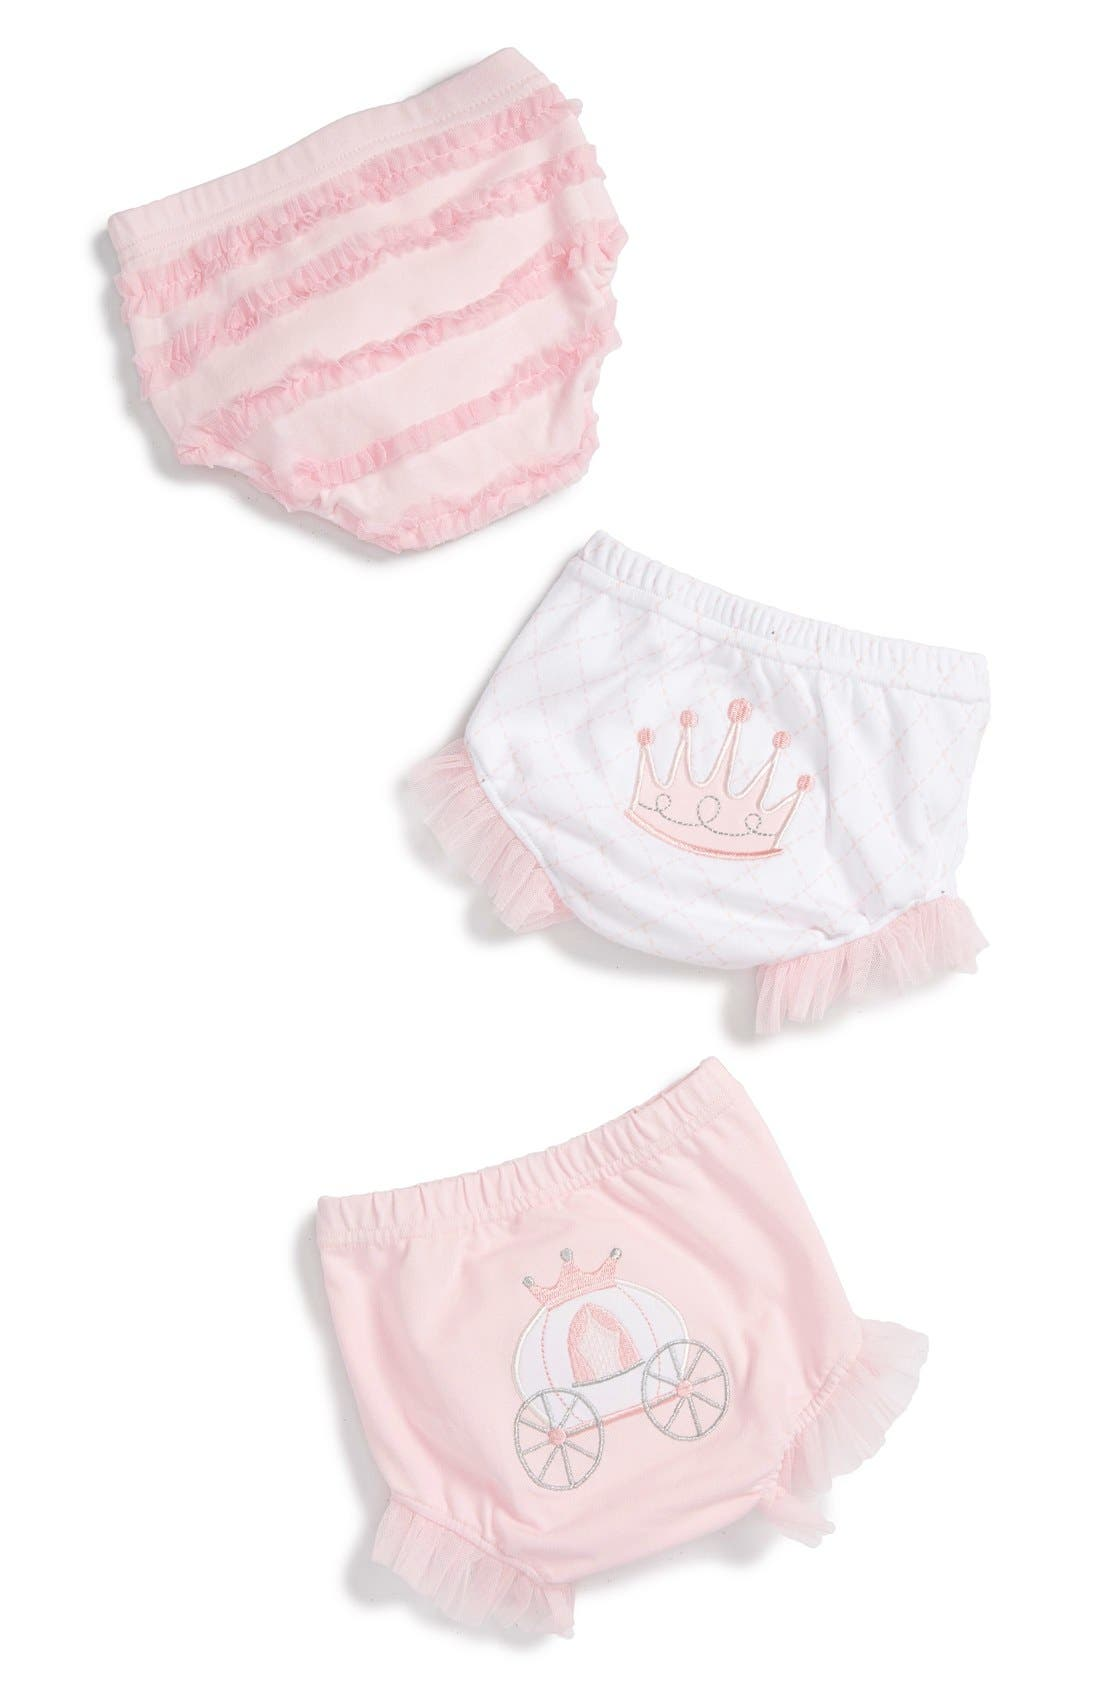 Main Image - Baby Aspen 'Her Royal Hineys' Bloomers (3-Pack) (Baby Girls)